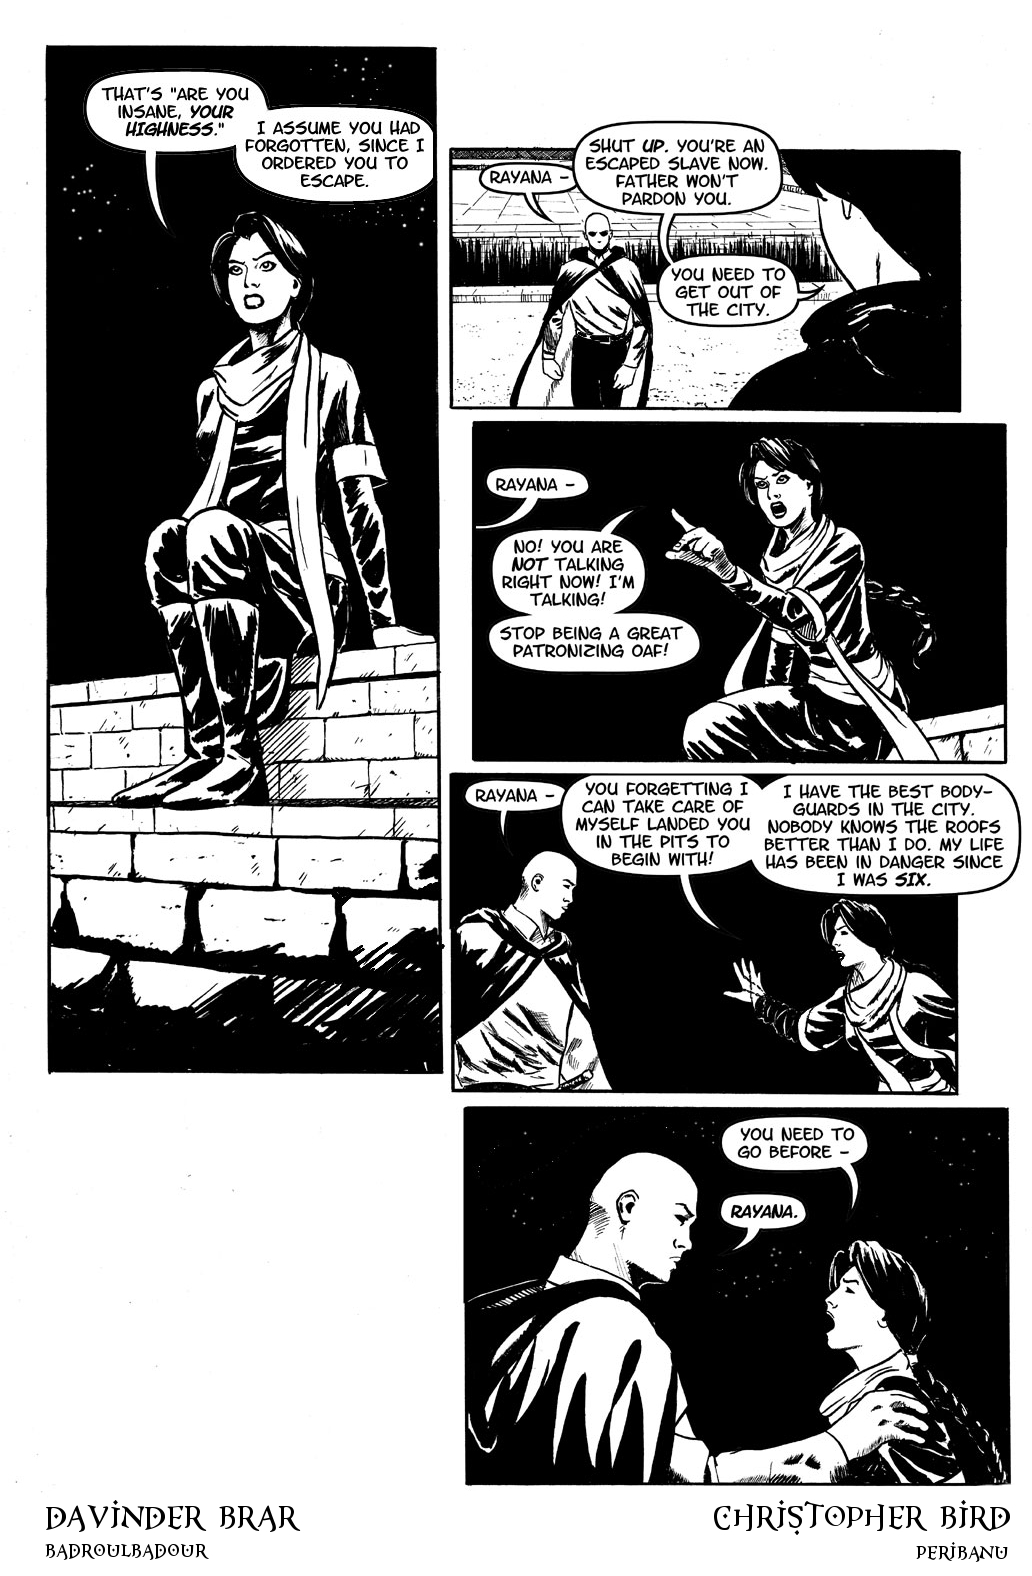 Book 4, page 5